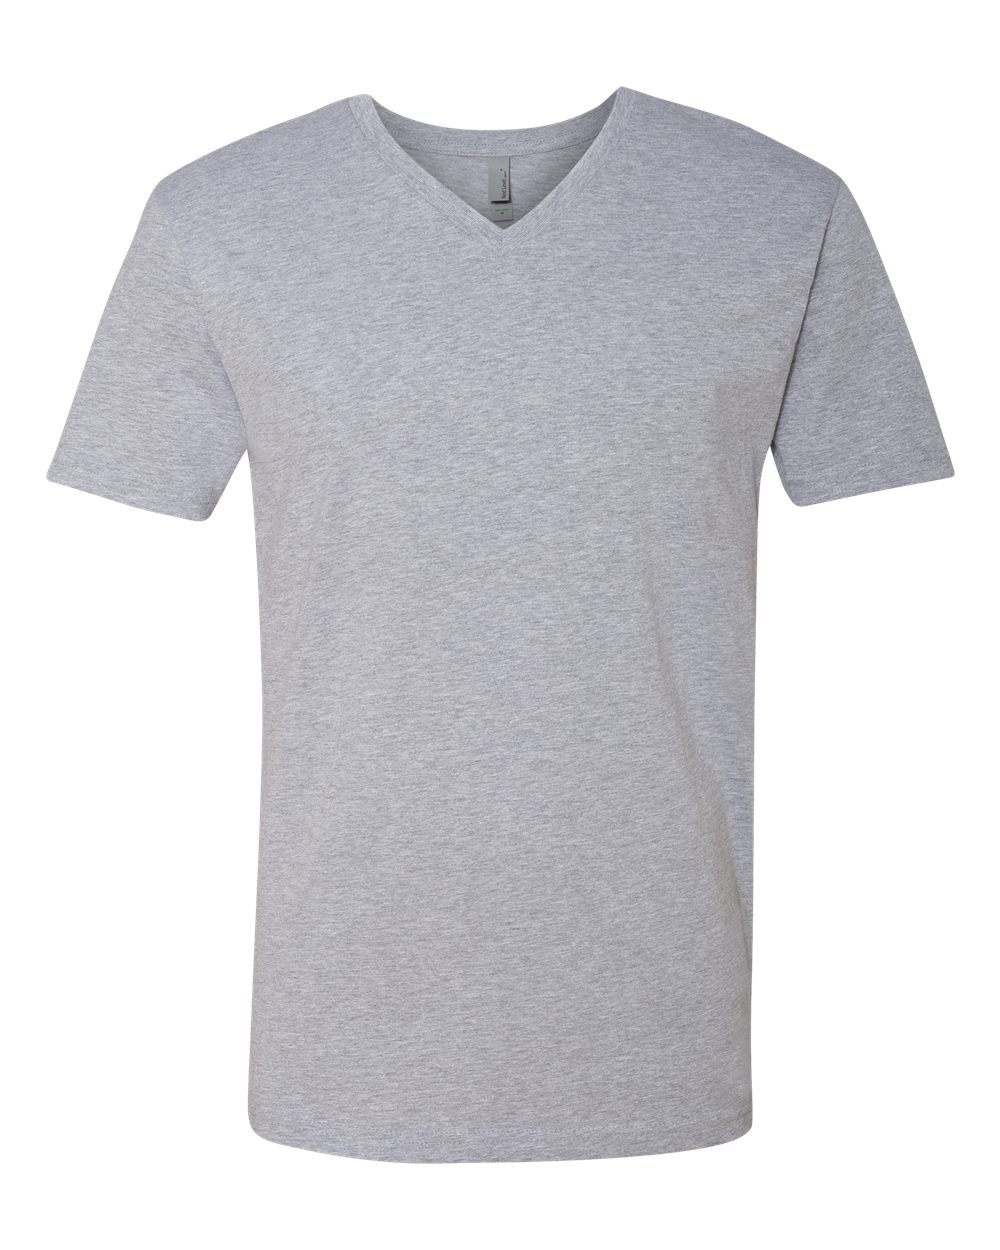 Next_Level_3200_Heather_Grey_Front_High.jpg